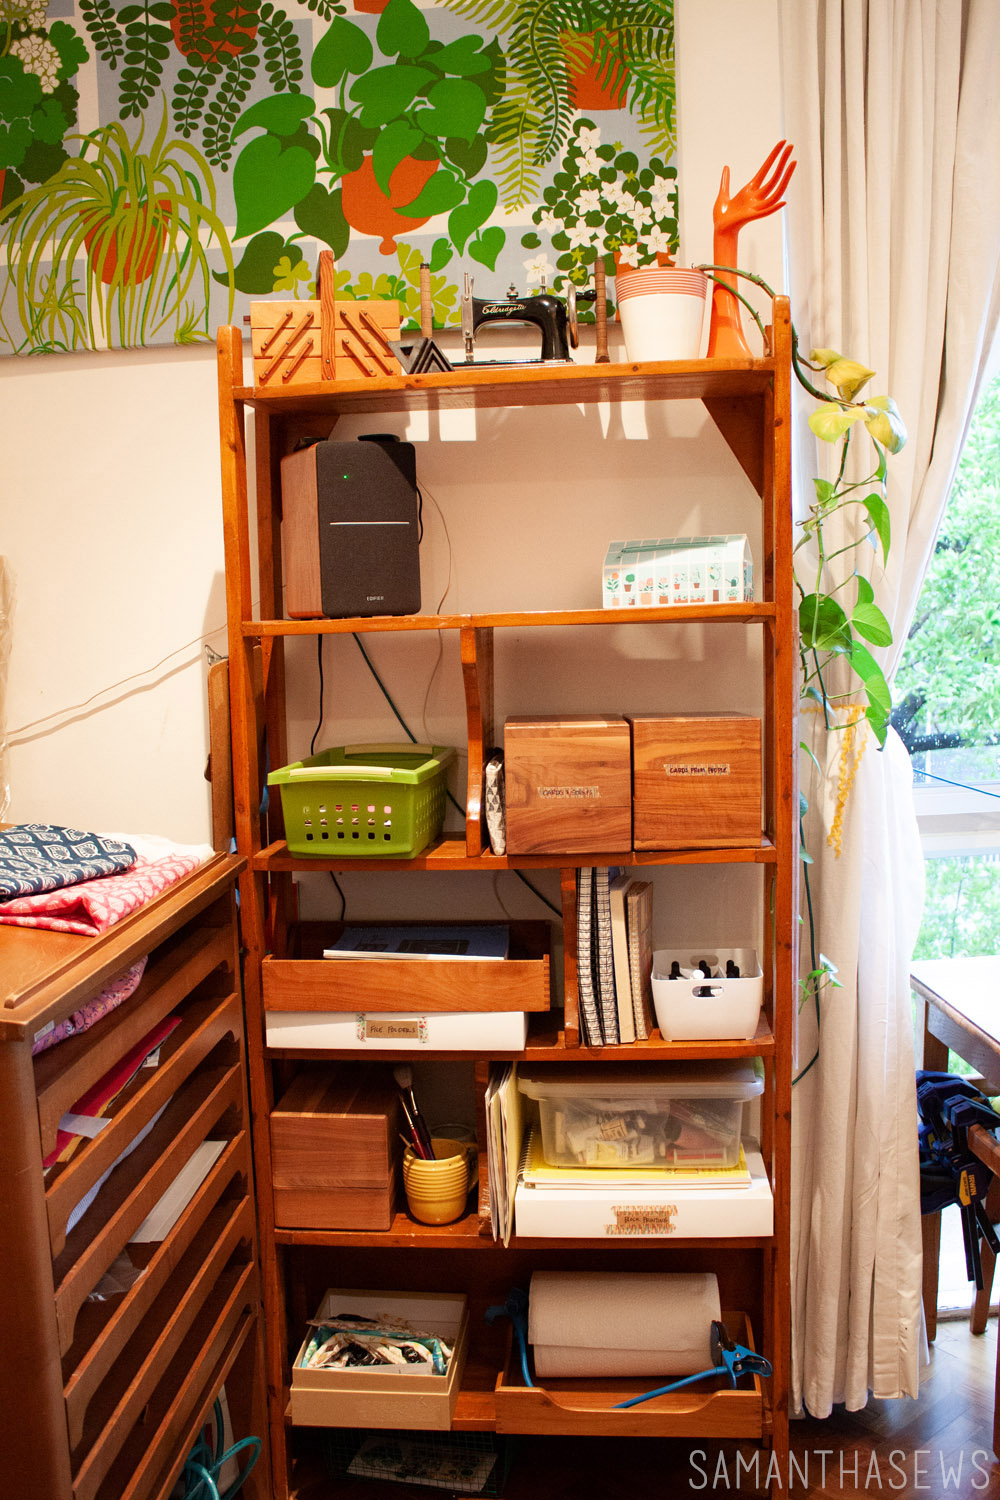 sewing room shelving unit